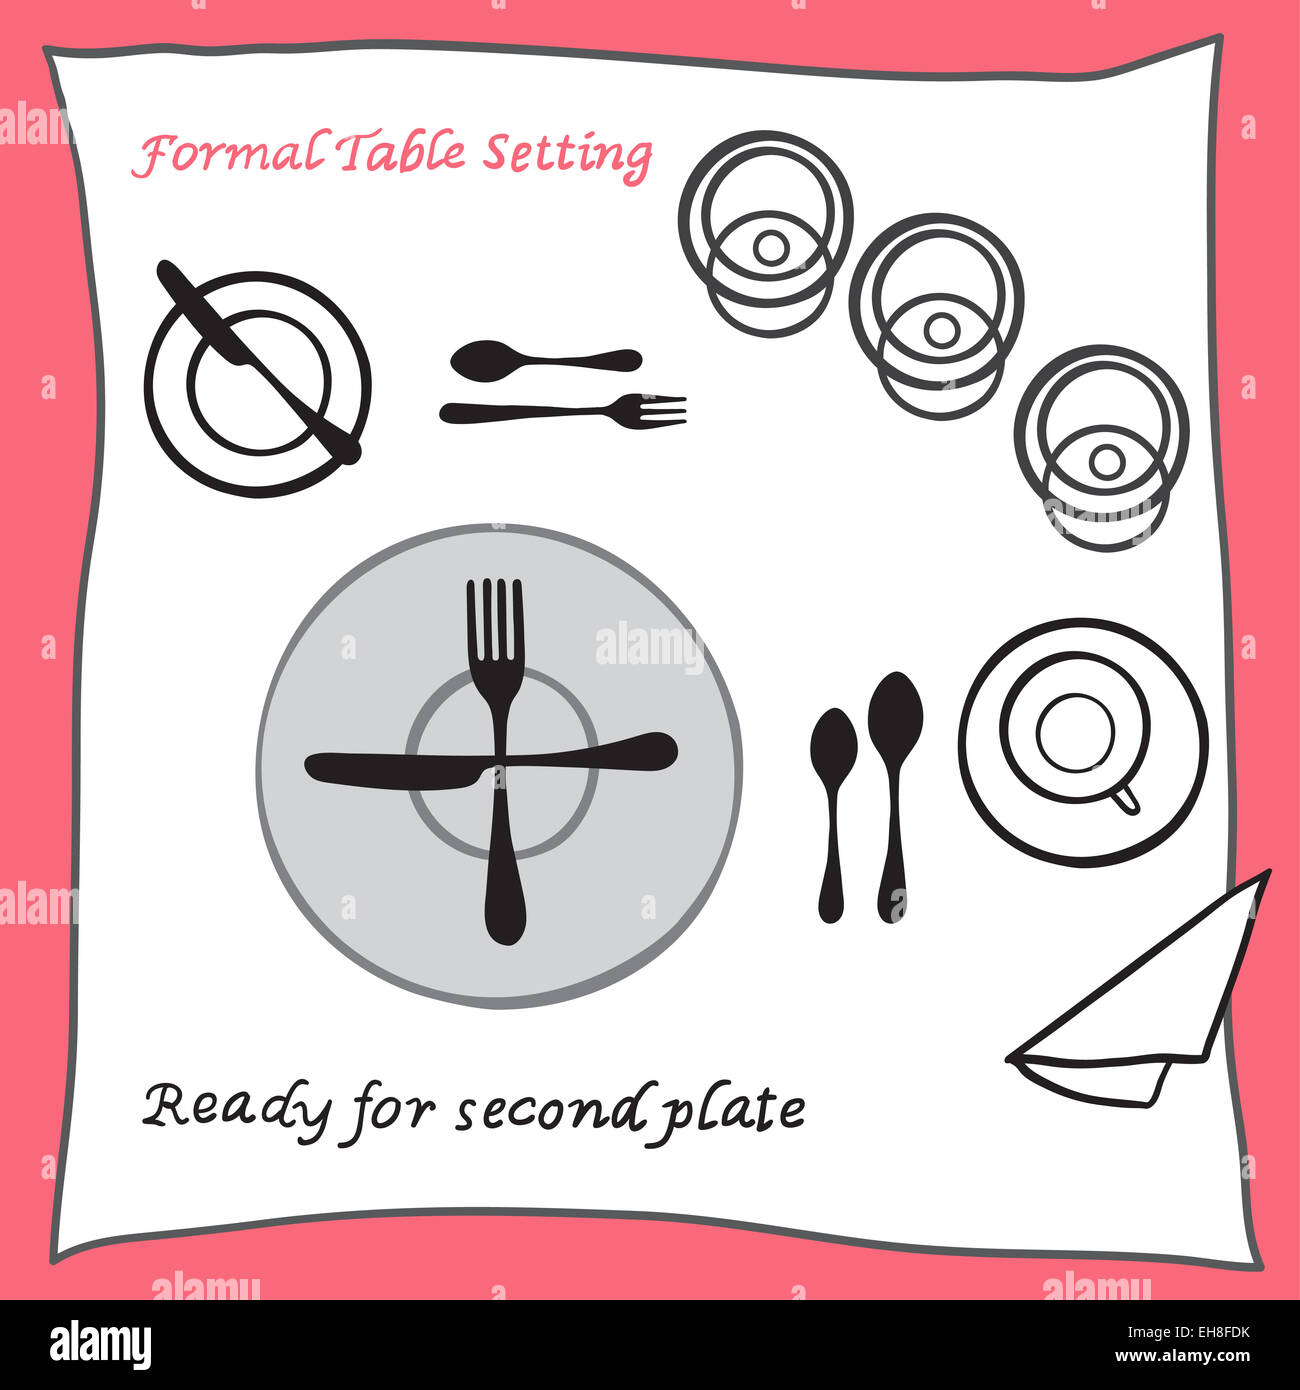 Ready for second plate. Dining table setting proper arrangement of cartooned cutlery  sc 1 st  Alamy & Ready for second plate. Dining table setting proper arrangement of ...